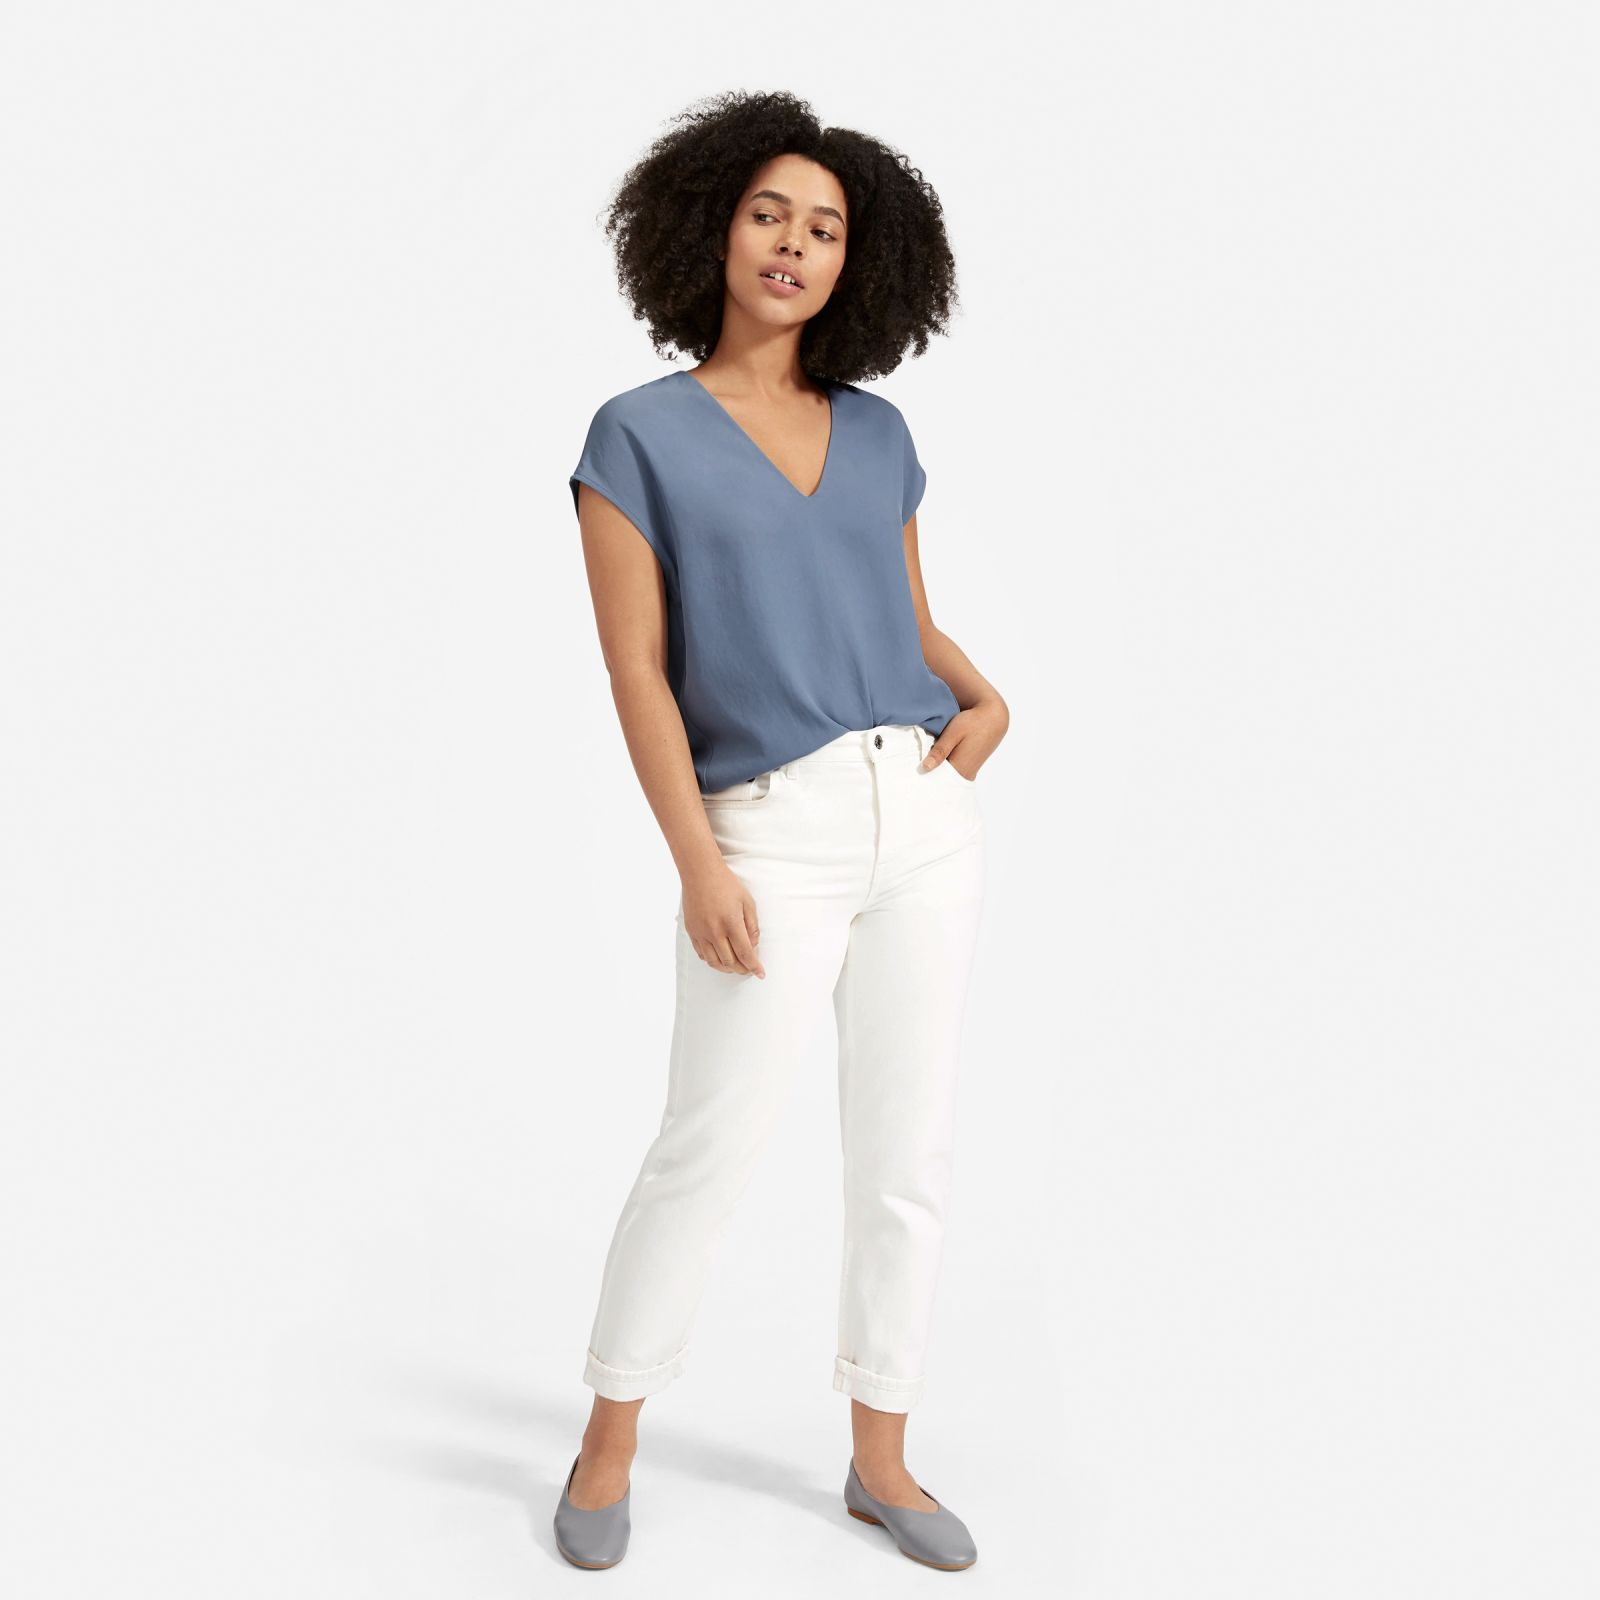 women's japanese goweave v-neck t-shirt by everlane in dusty blue, size 16